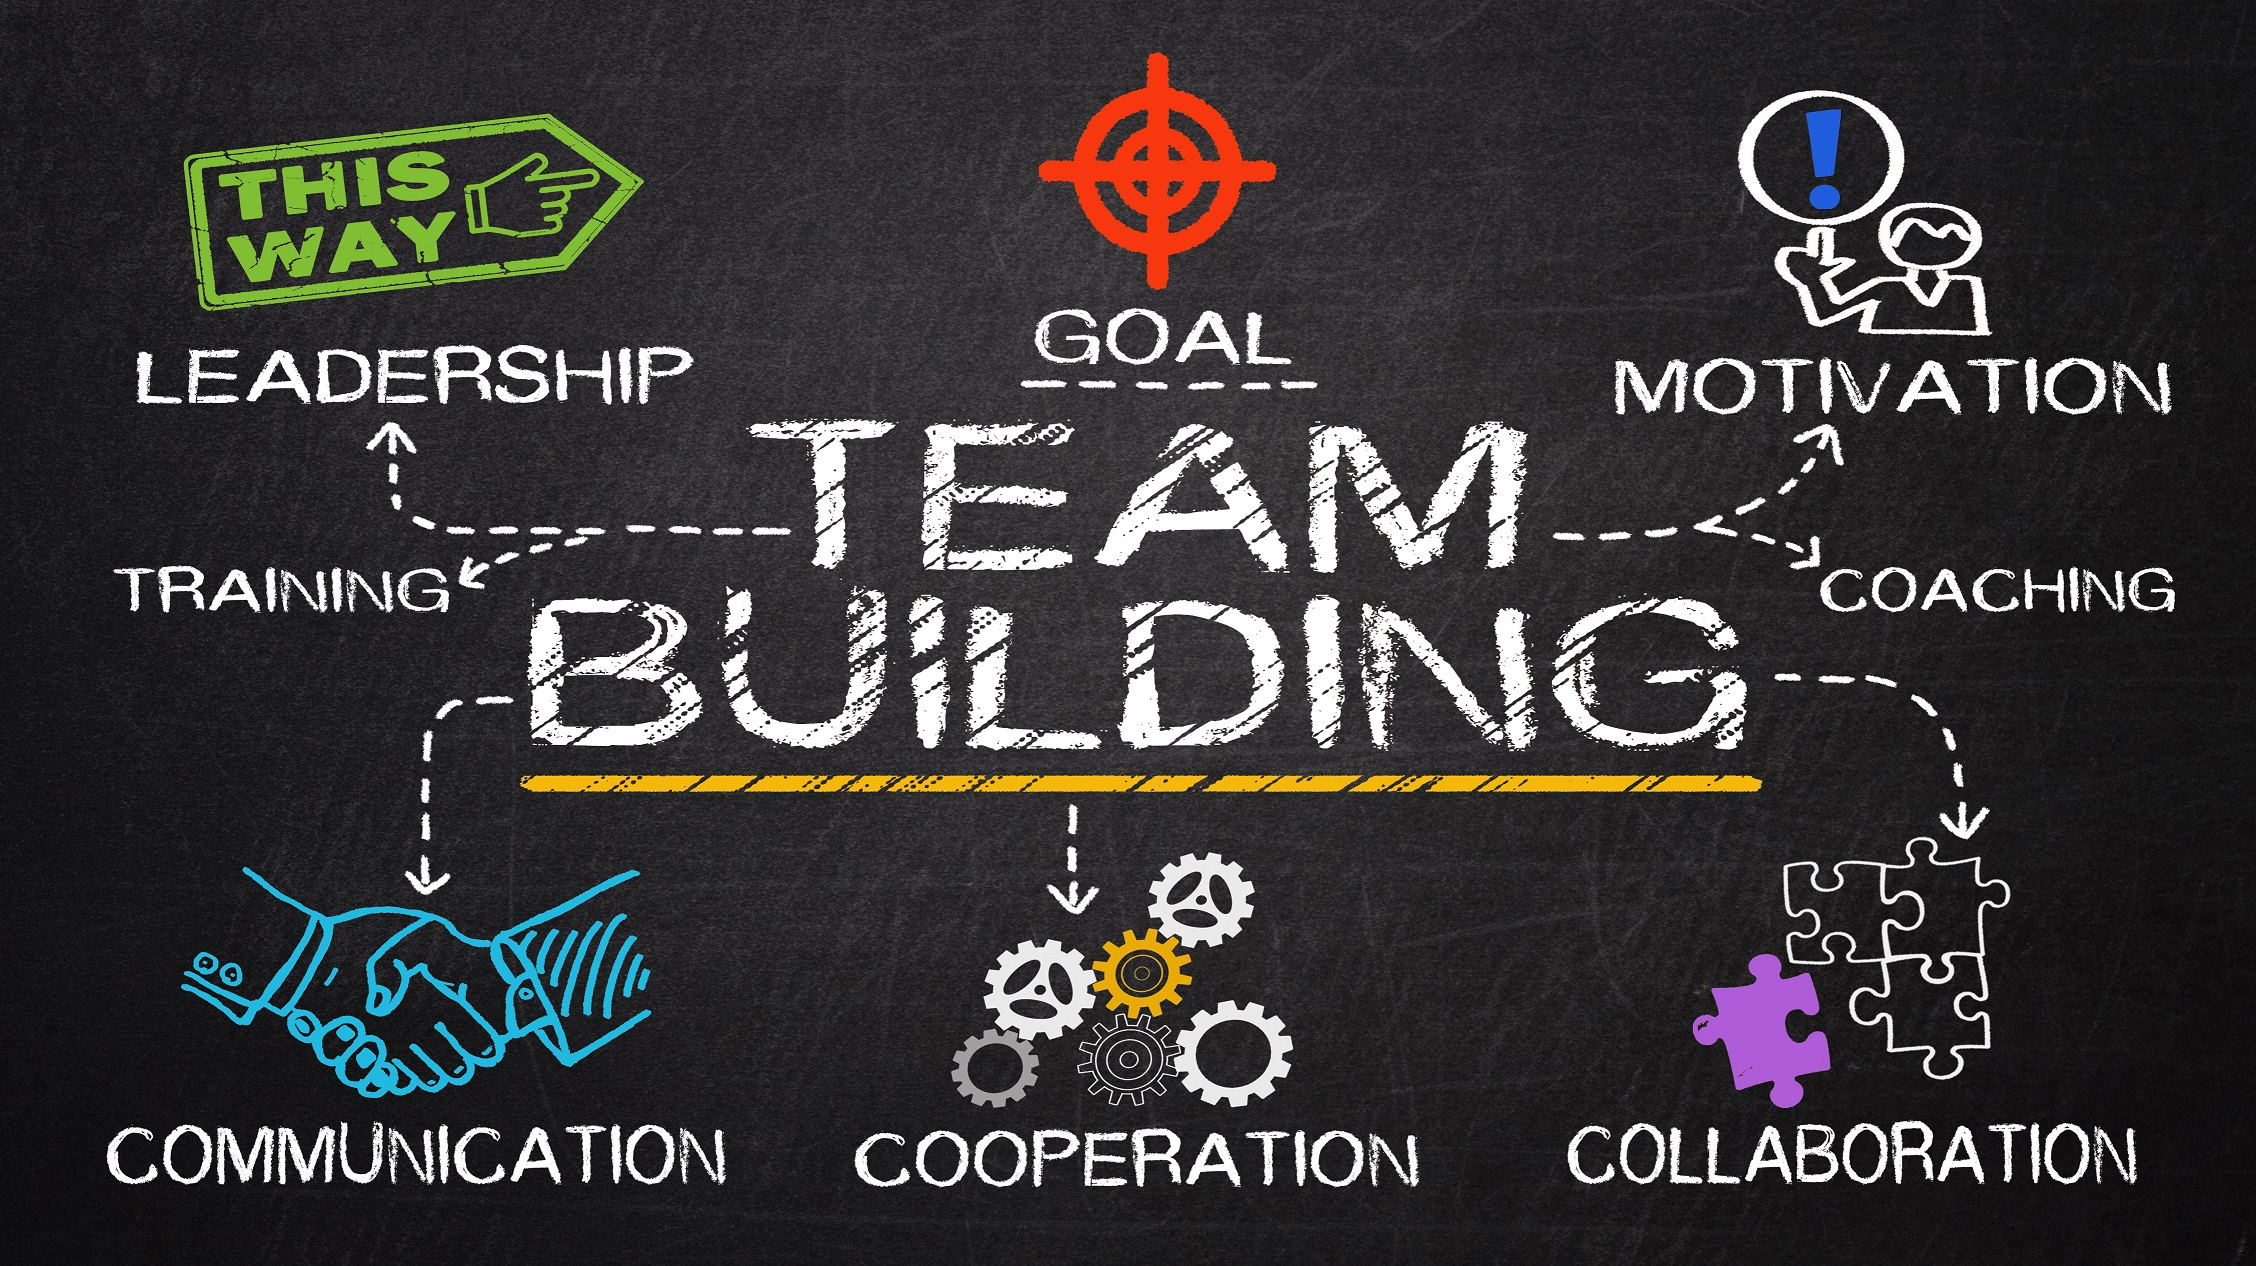 How to Promote Teamwork at Your Workplace